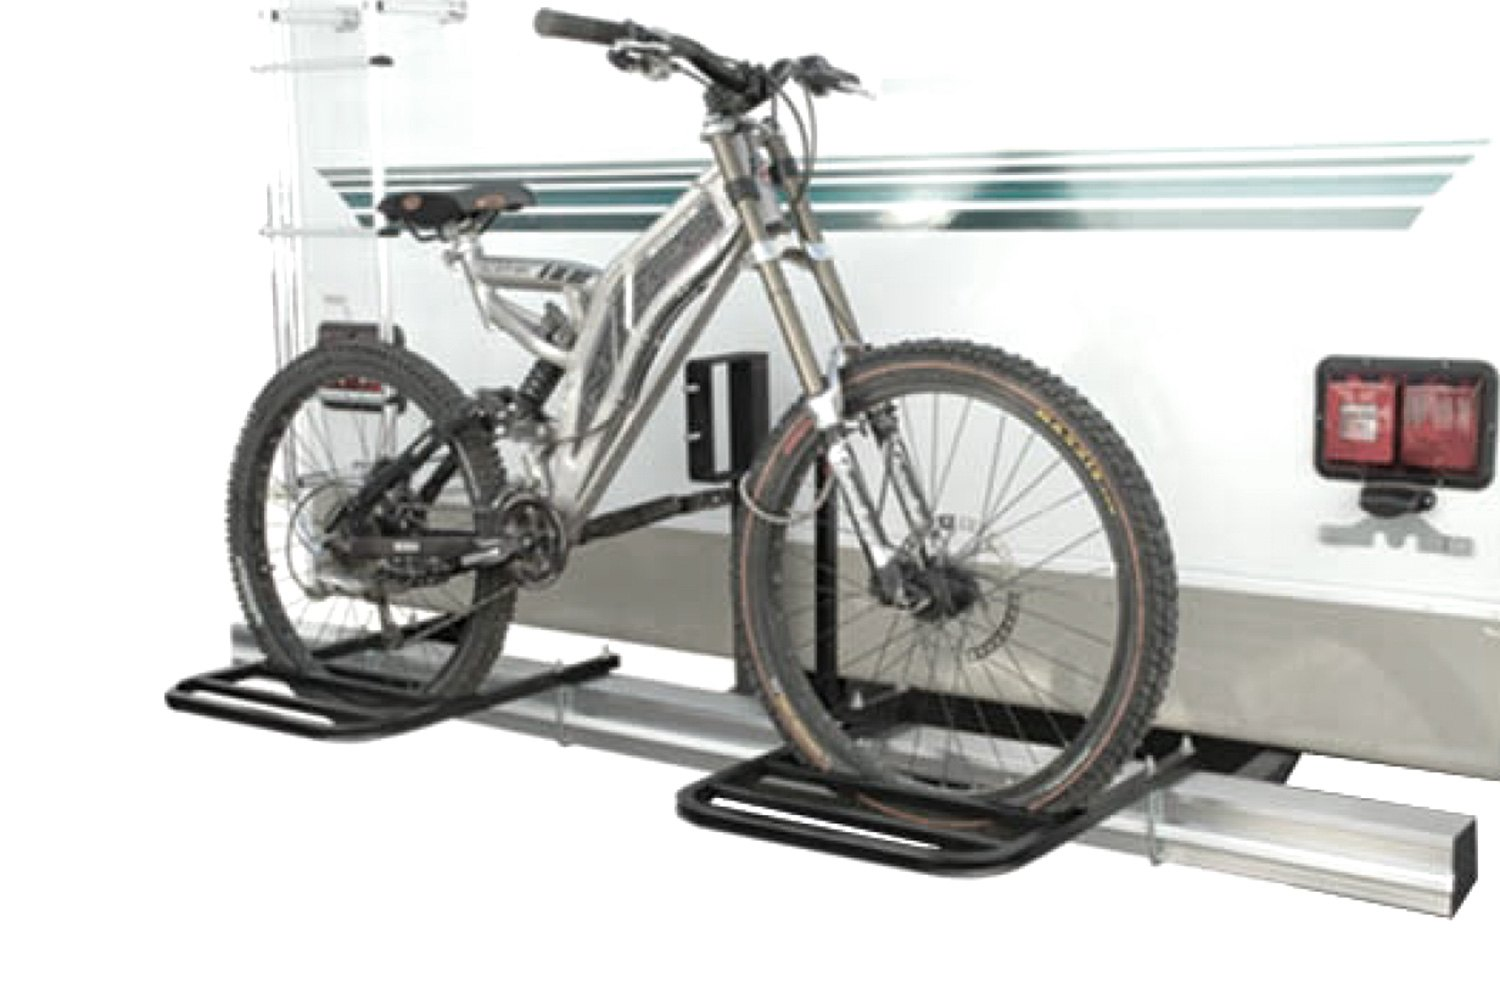 Tab Rv Prices >> Swagman 80605 - RV Platform Bumper Mount Bike Rack for 2